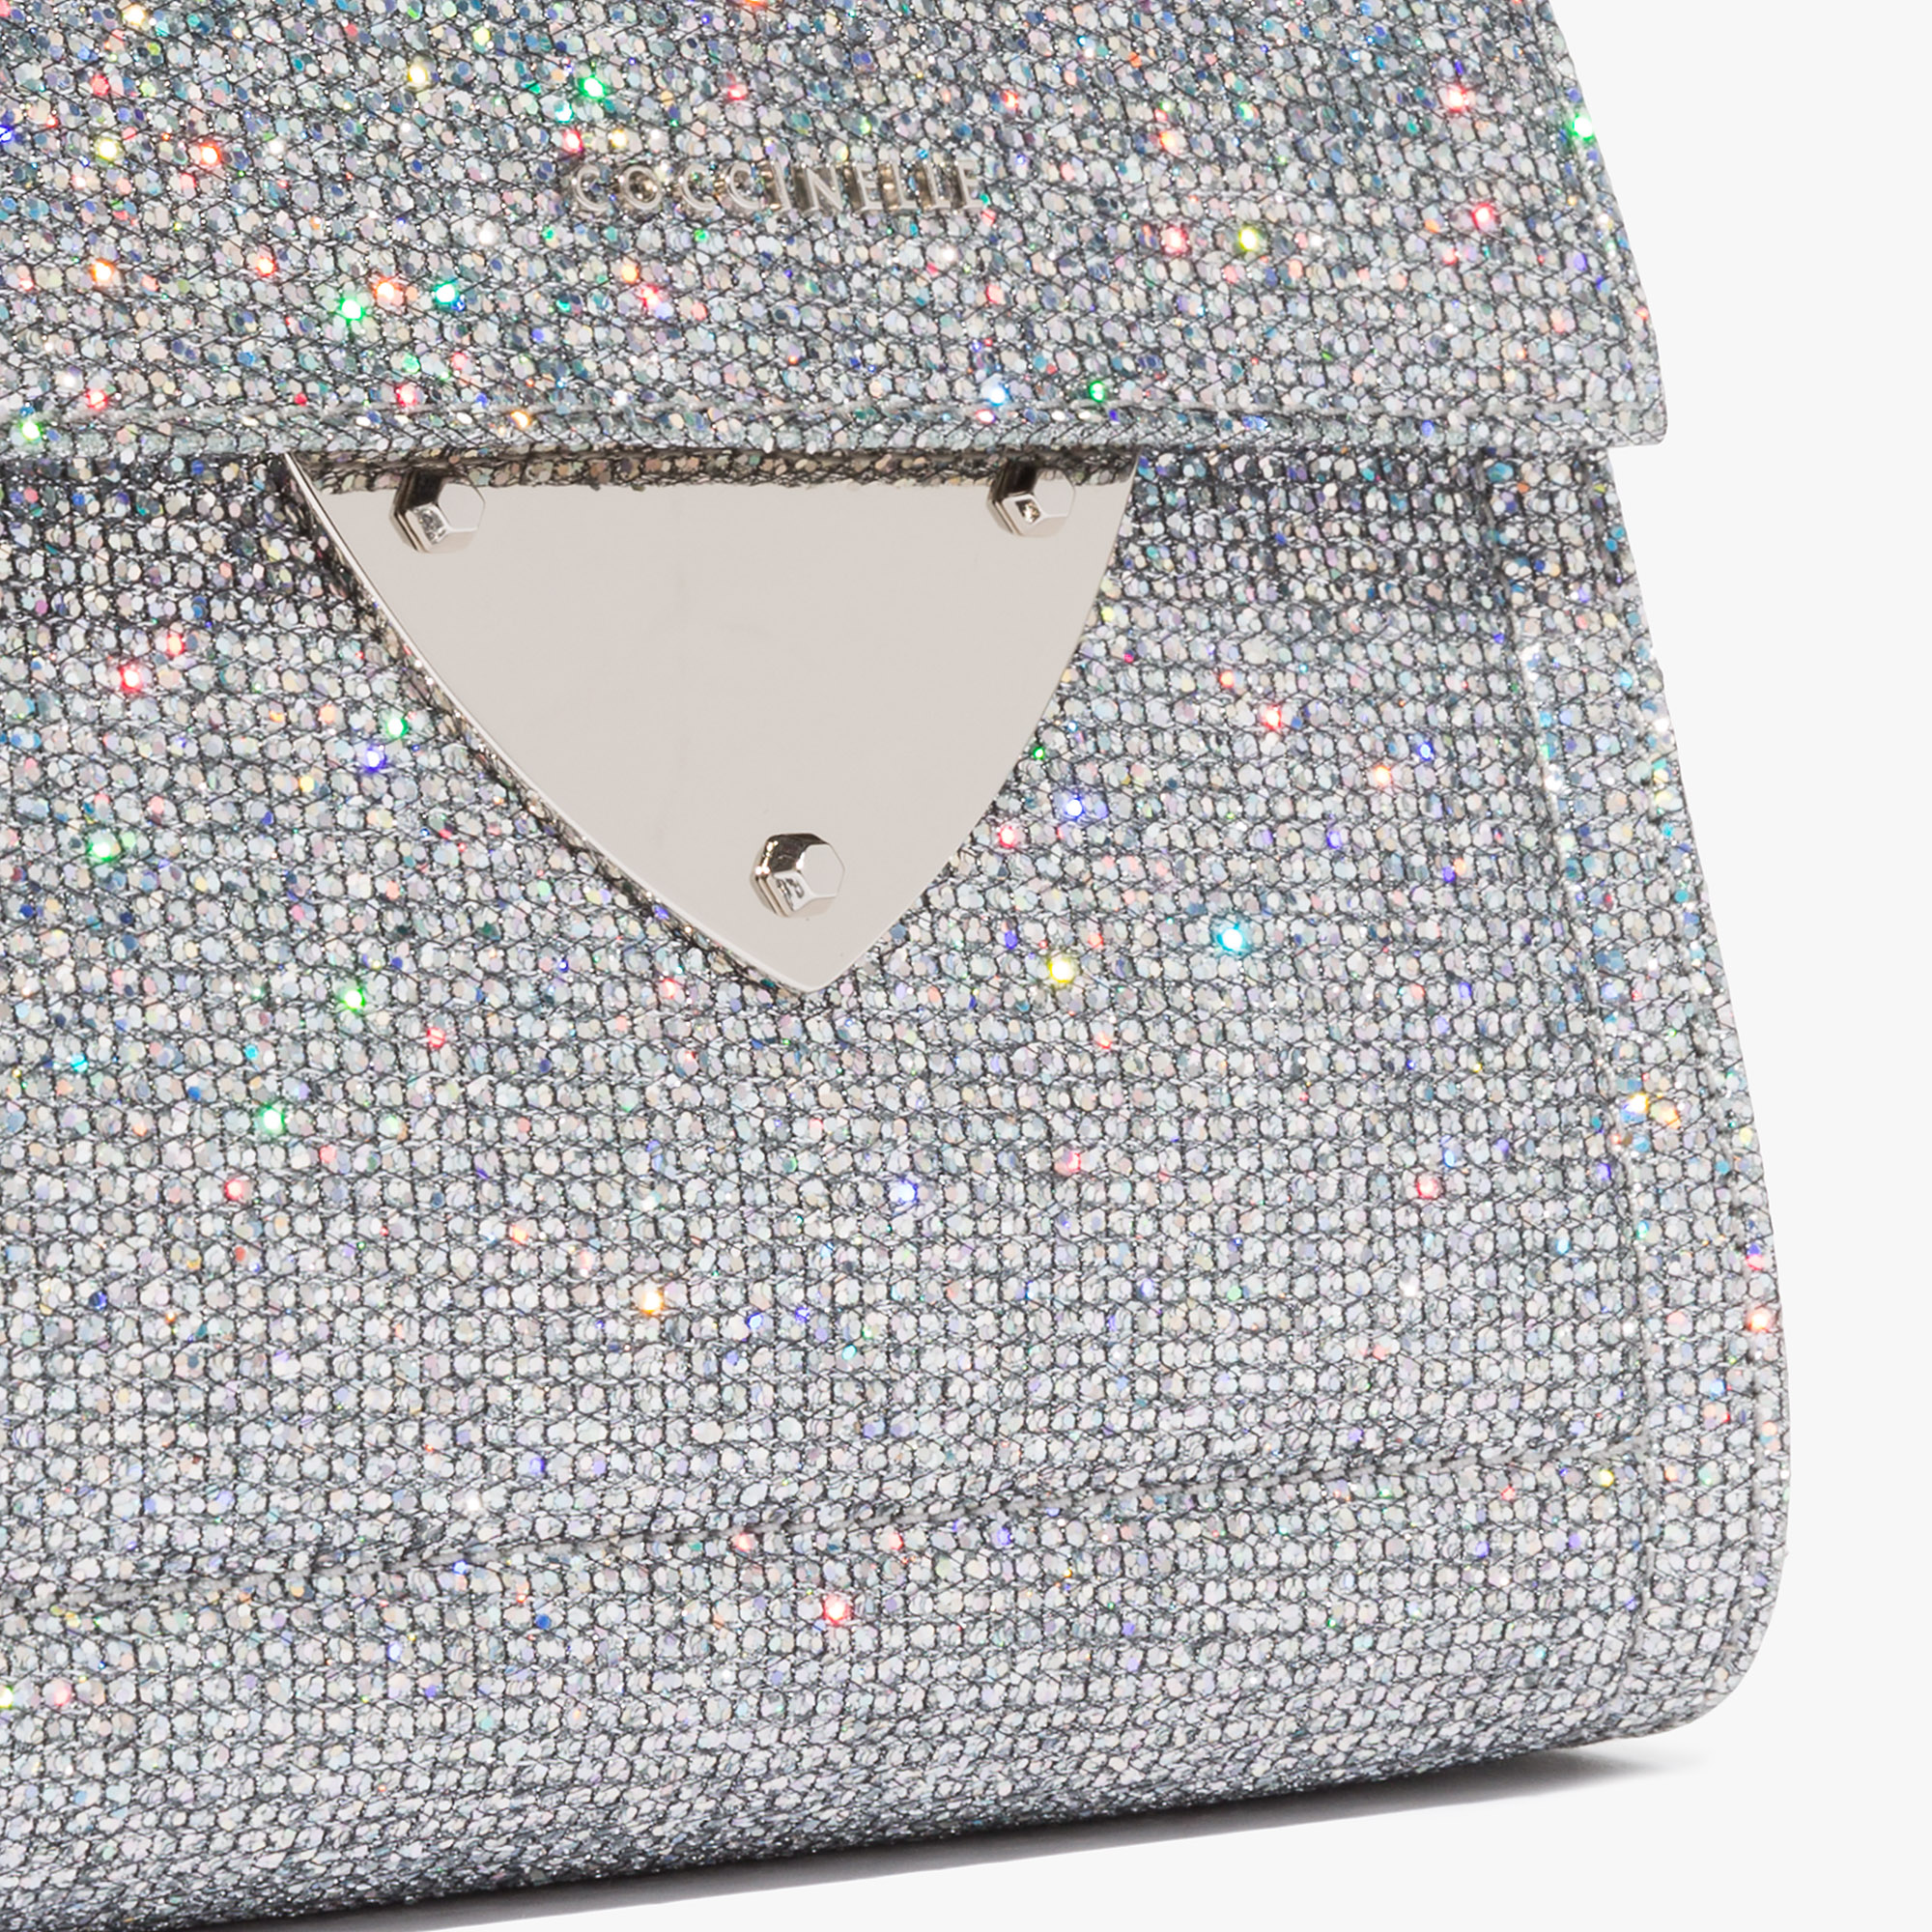 Coccinelle B14 mini bag in glittery leather